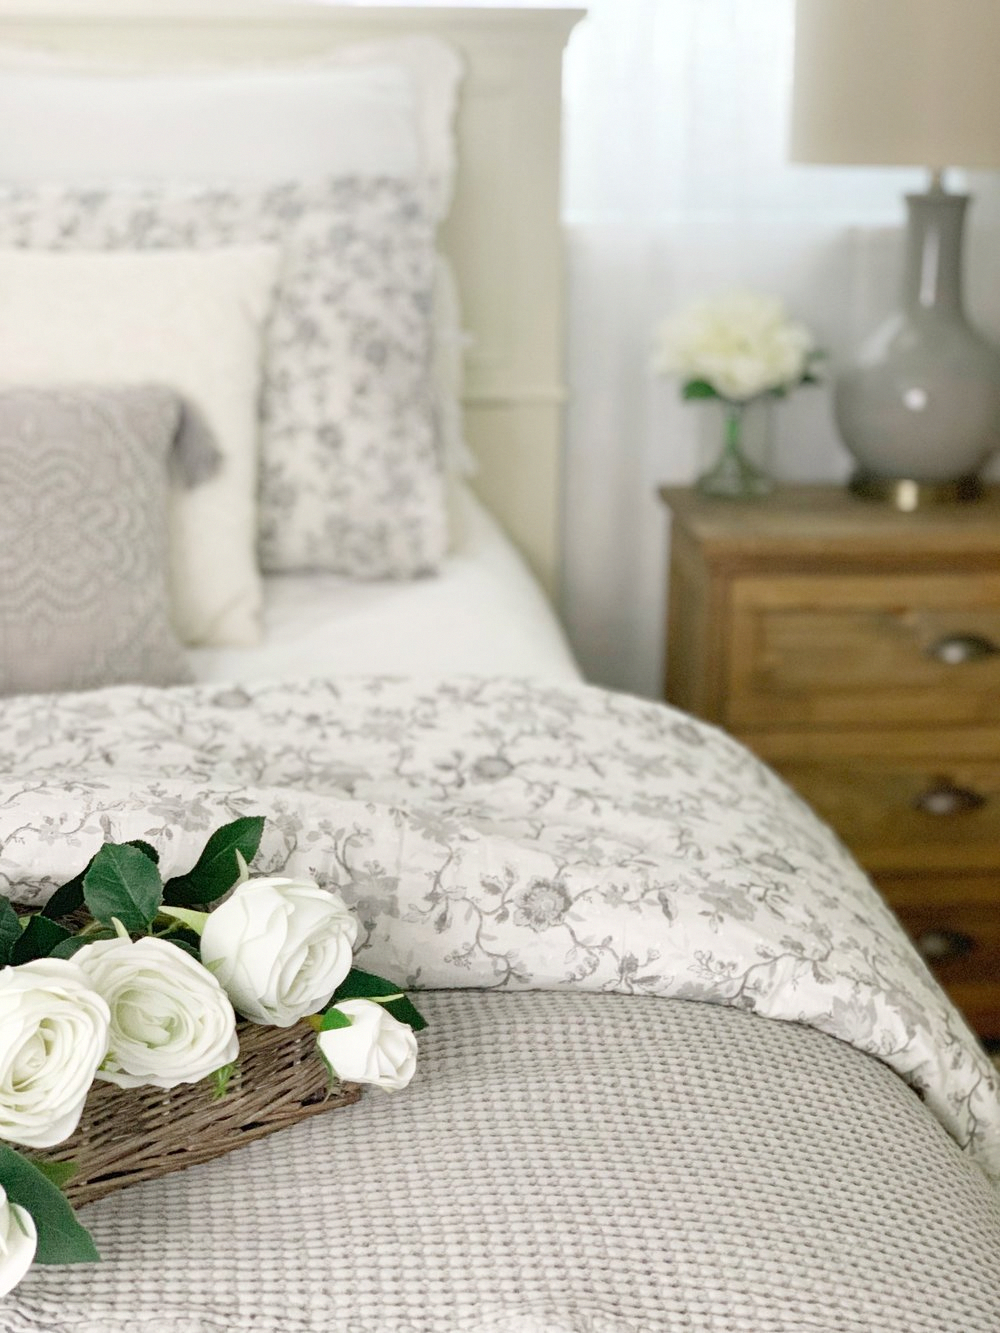 Small Space Living : How we make the most of our Small Master Bedroom — Dreaming of Homemaking #farmhouse #farmhousebedroom #bedroom #whitefarmhouse #farmhousestyle #modernfarmhouse #realfarmhouse #myhousebeautiful #hgtv #thefarmhousemovement #prettyandoverlooked #homedecor #fixerupperstyle #dreamhouse #homeinterior #homedesign #bedroomgoals #farmhouselove #sweetsimplehome #farmhouseinspired #farmhouseliving #farmhousedecor #cottagestyle #bedroomdesign #be #farmhousemasterbedroom